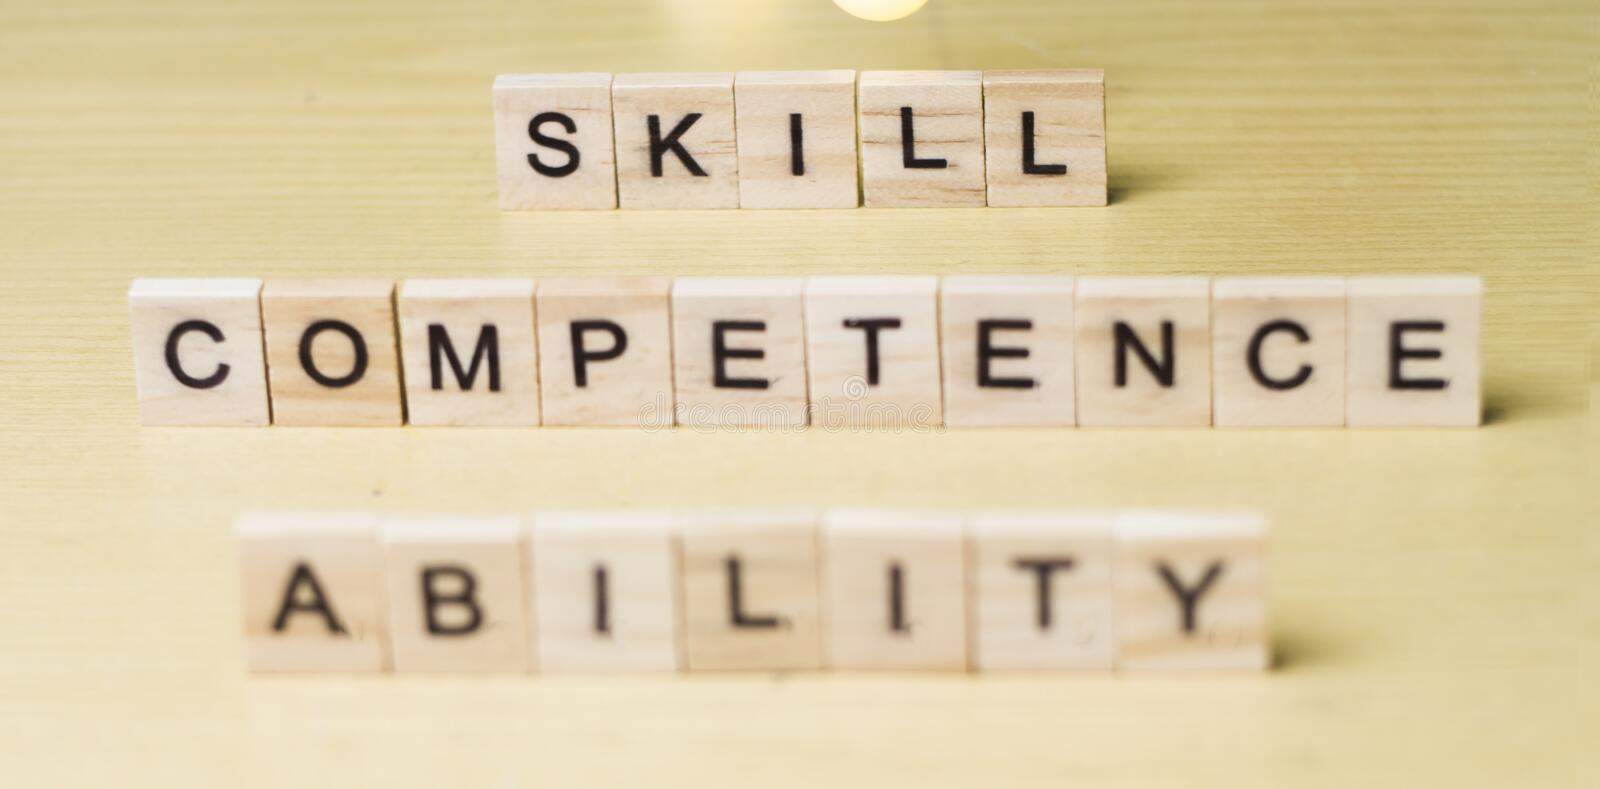 Skill Ability Competence, Business Words Quotes Concept royalty free stock images